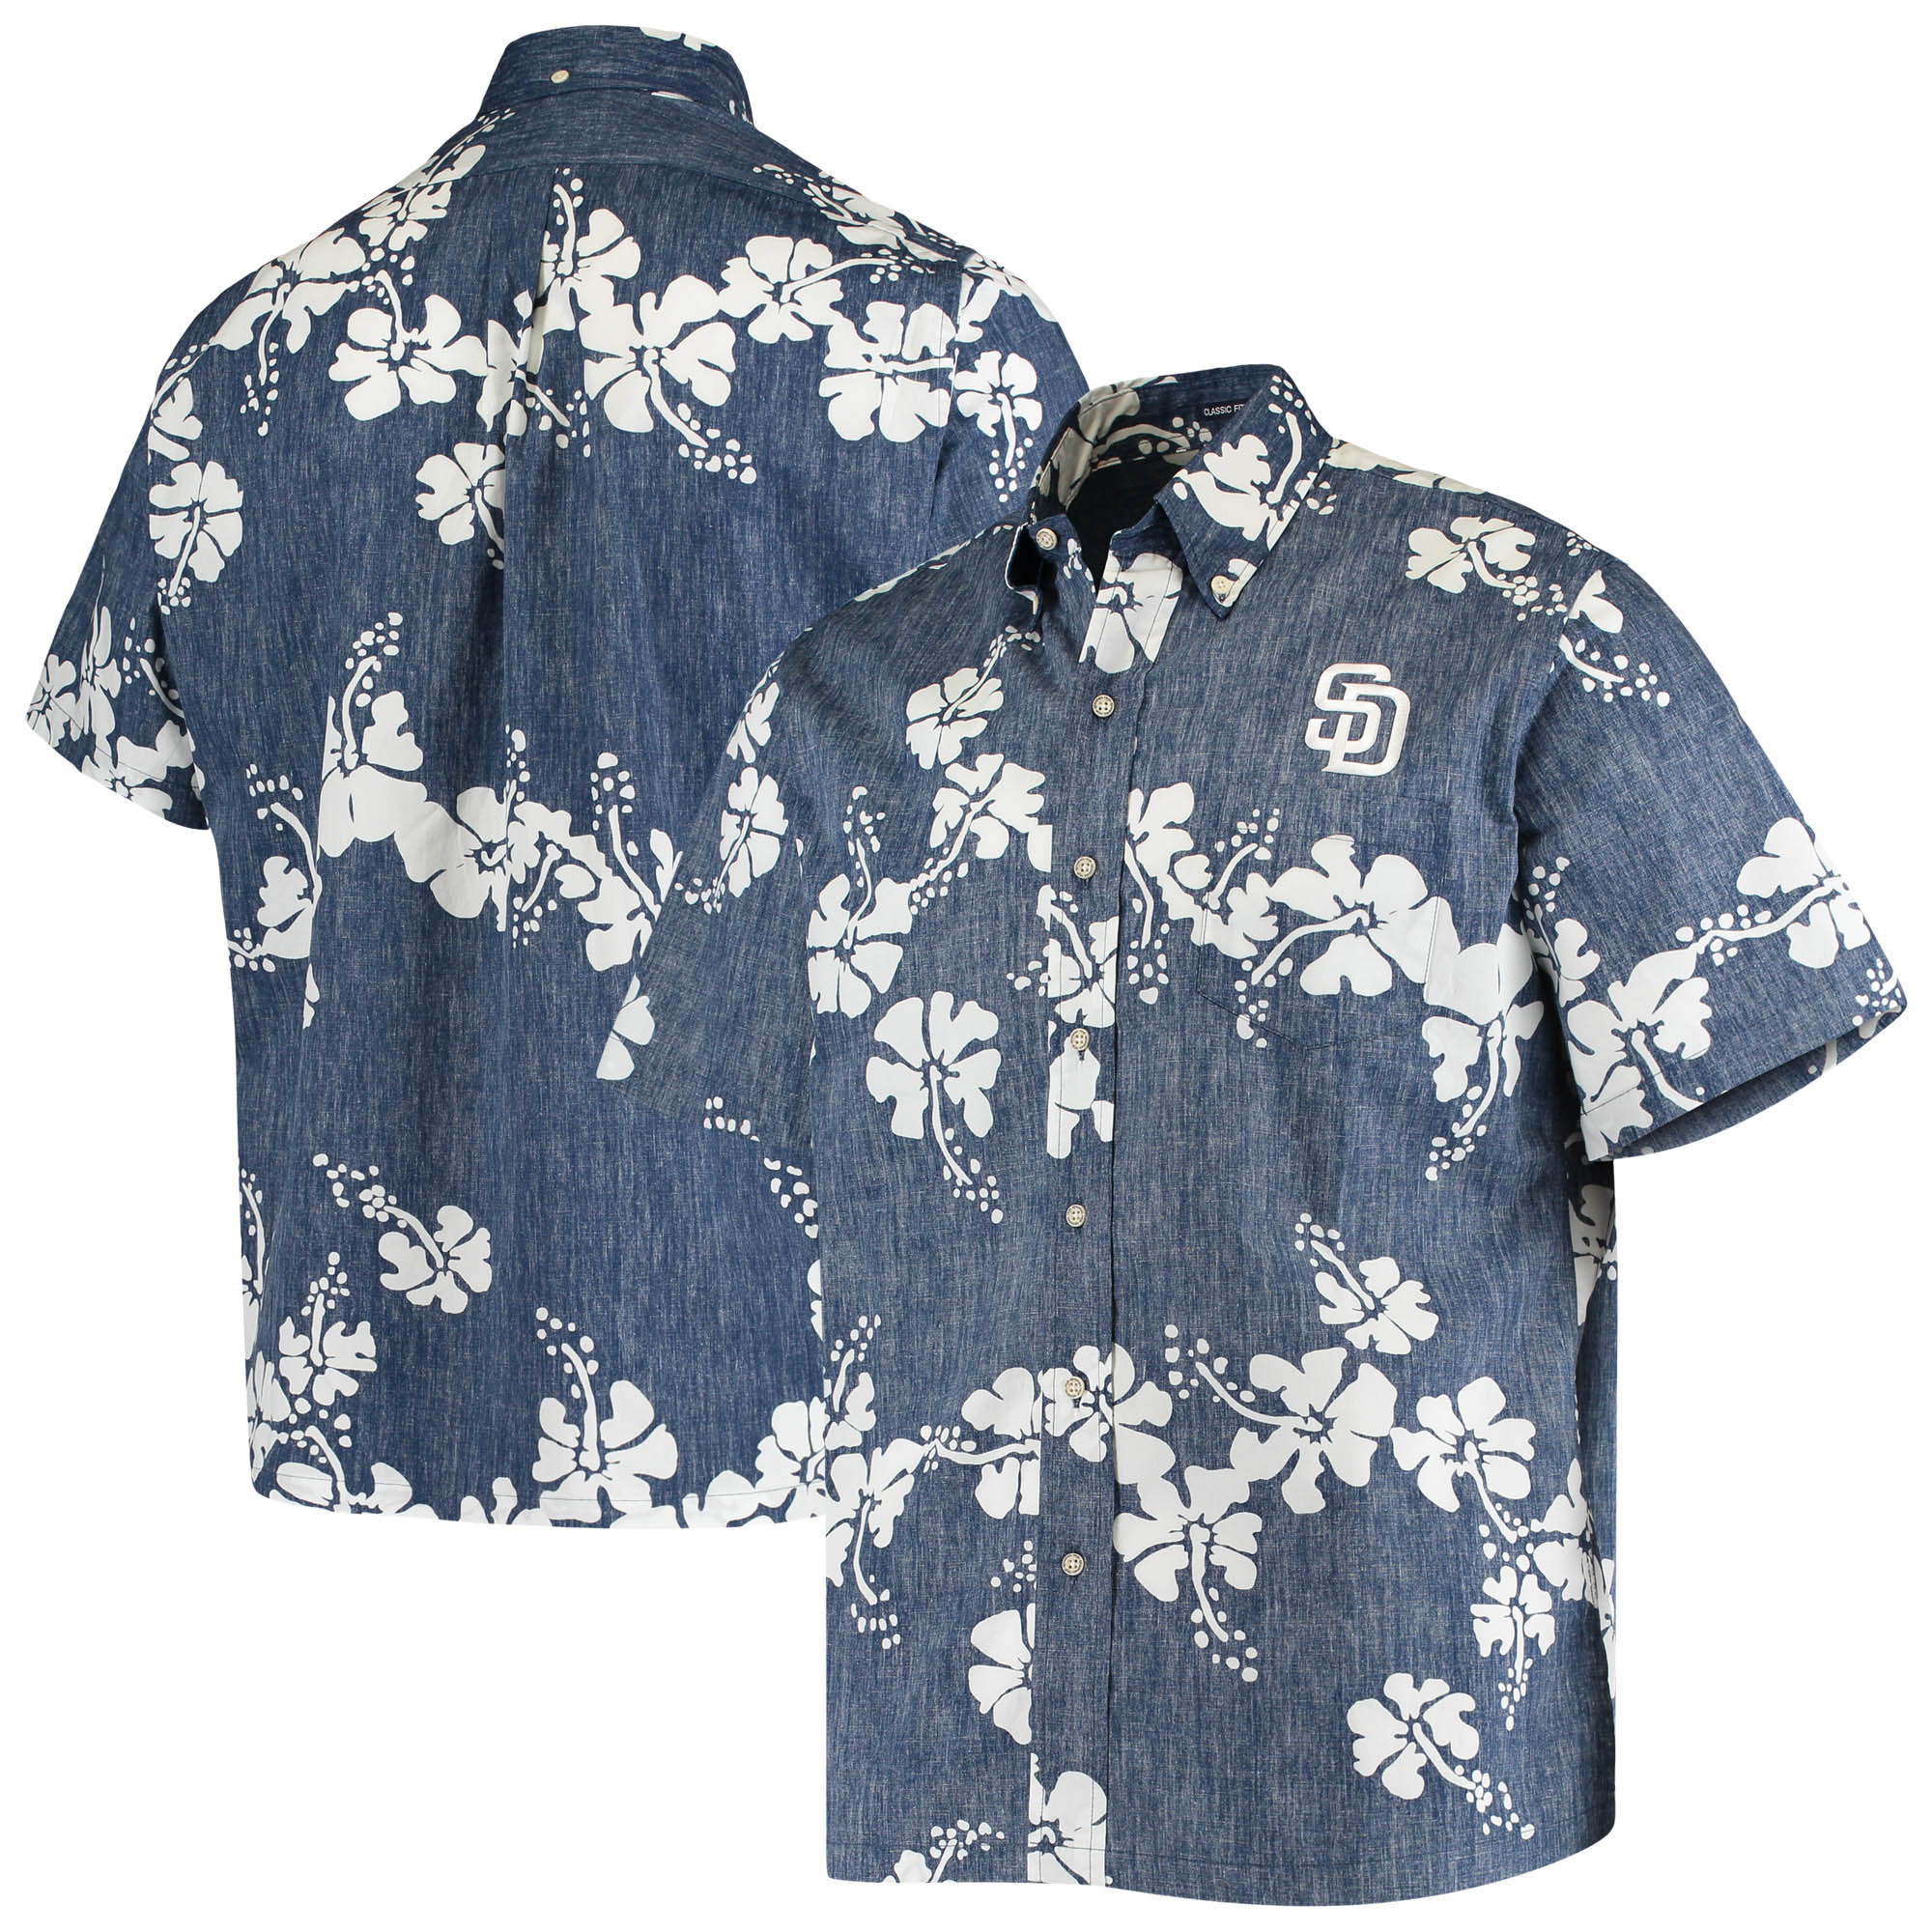 San Diego Padres Reyn Spooner 50th State Button-Down Shirt - Heathered Navy